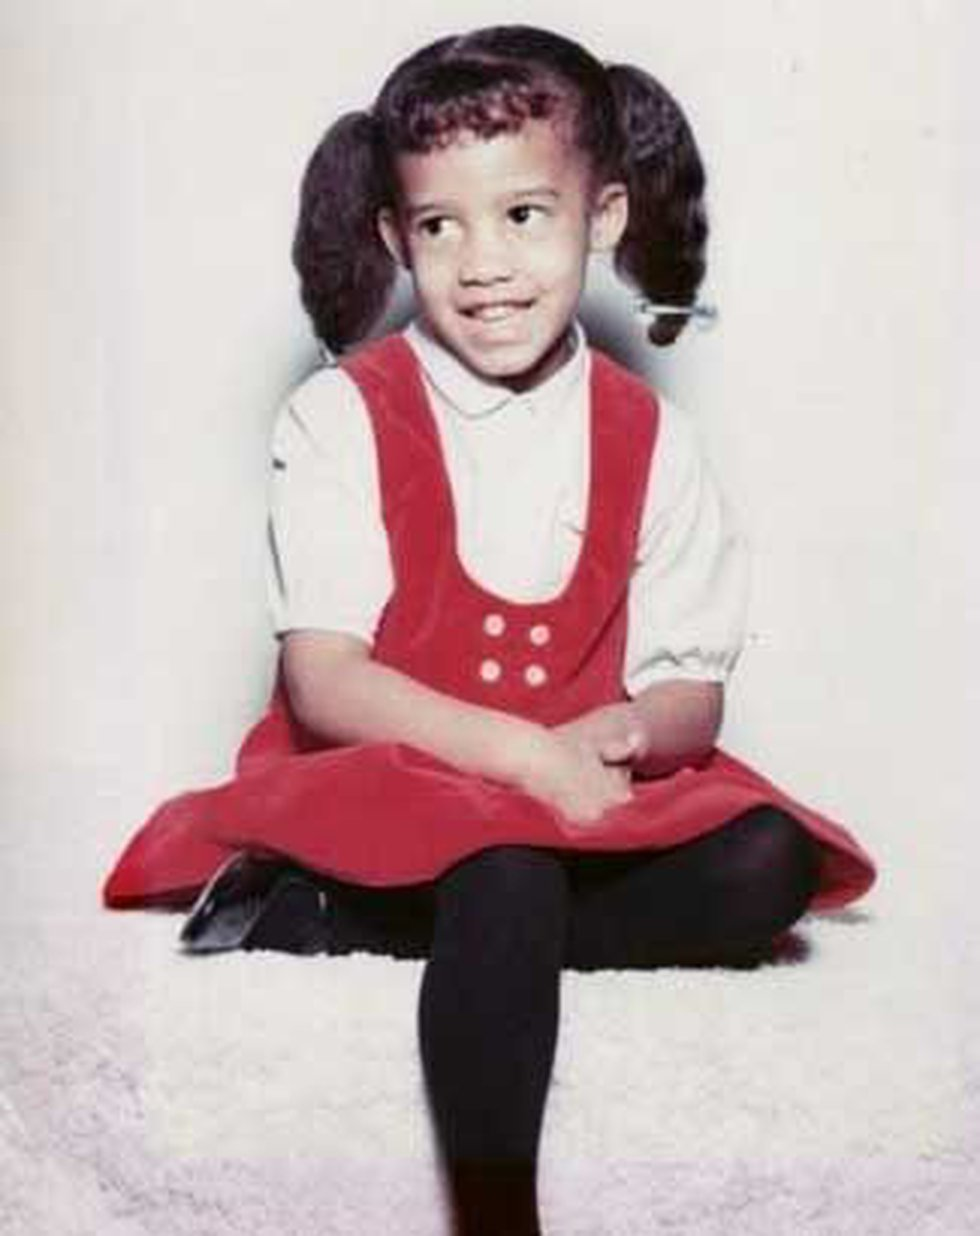 Dawne Gee at age 6 (Source: Family photo)